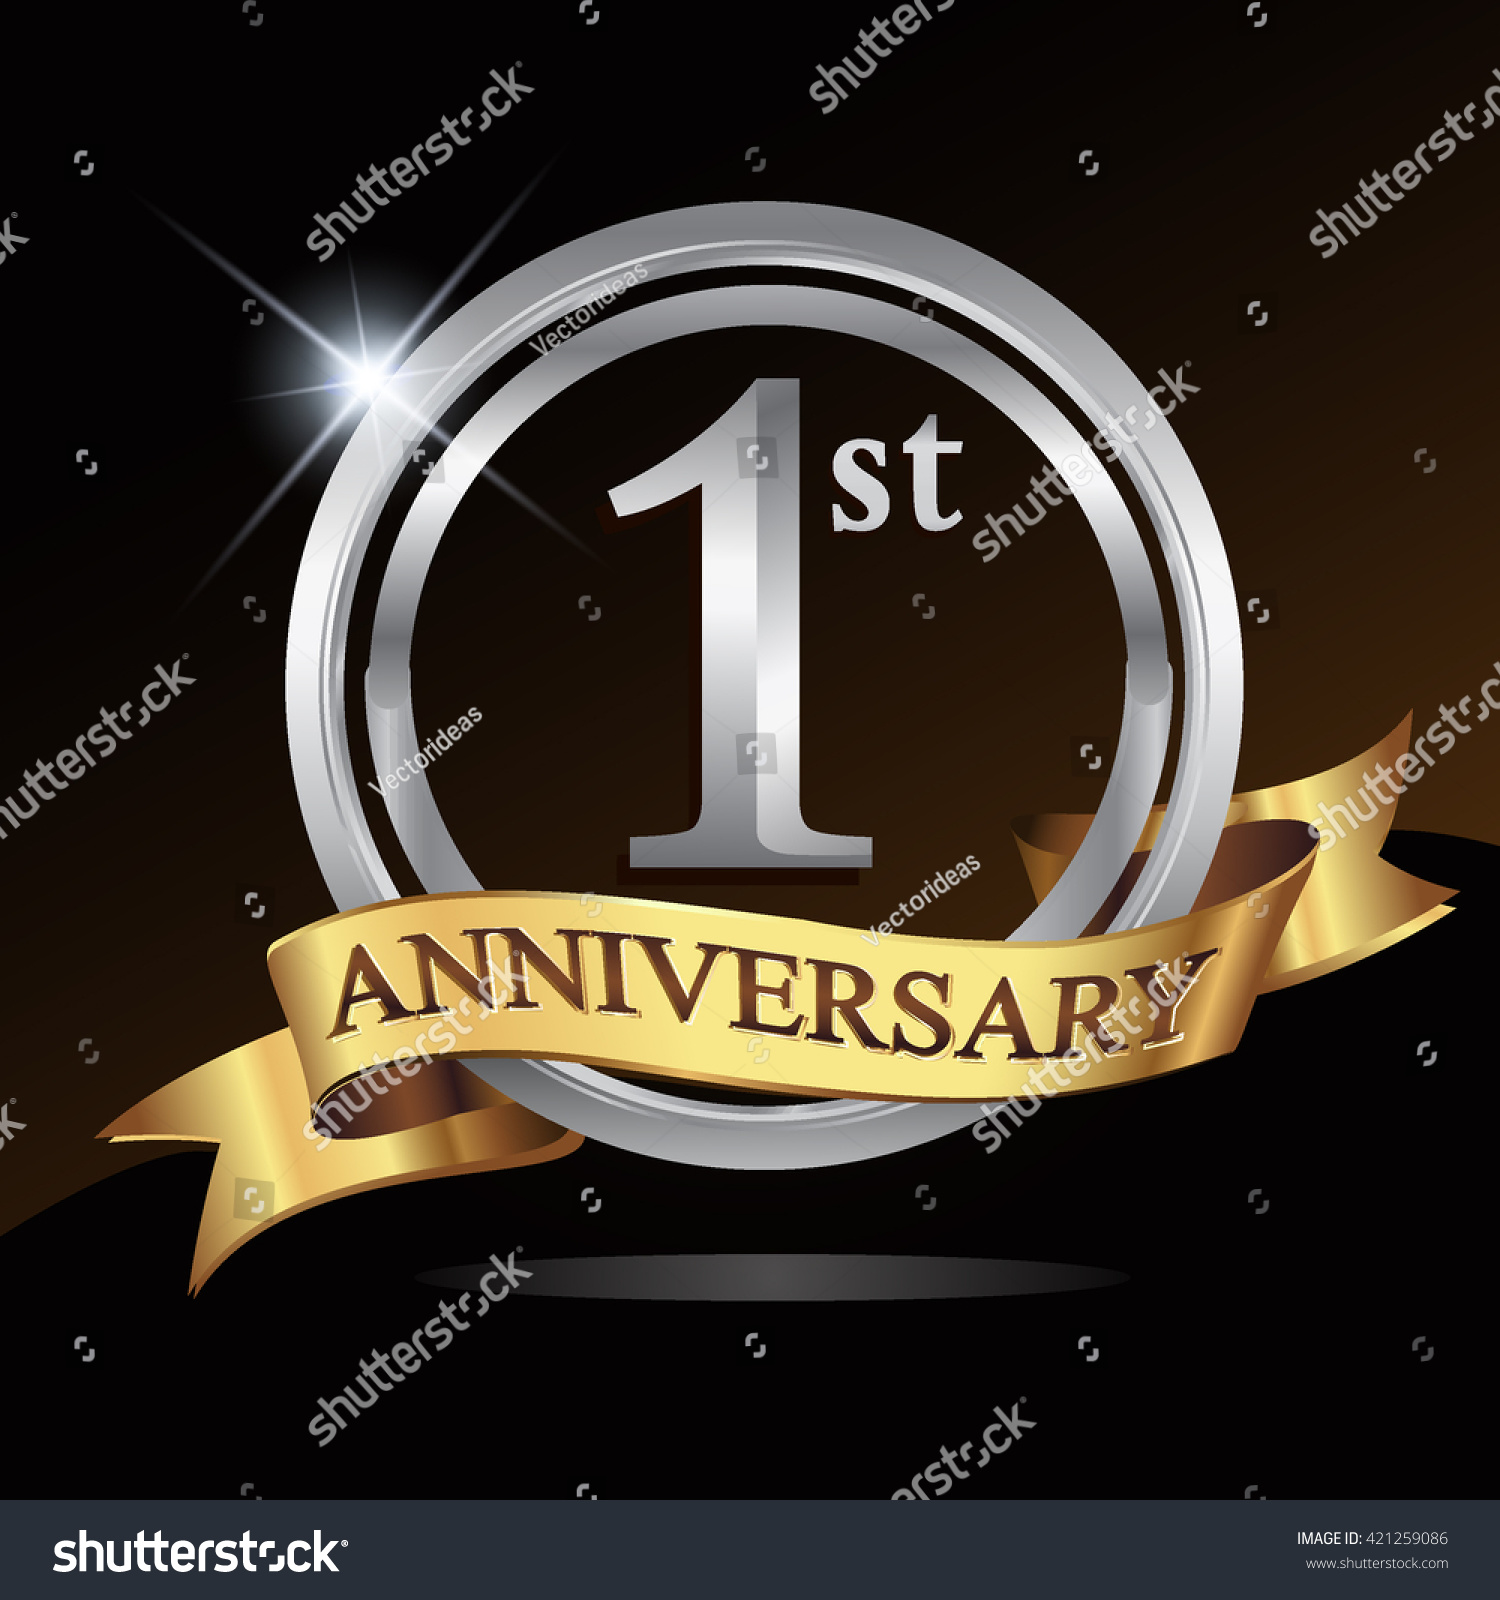 St anniversary logo shiny silver ring stock vector